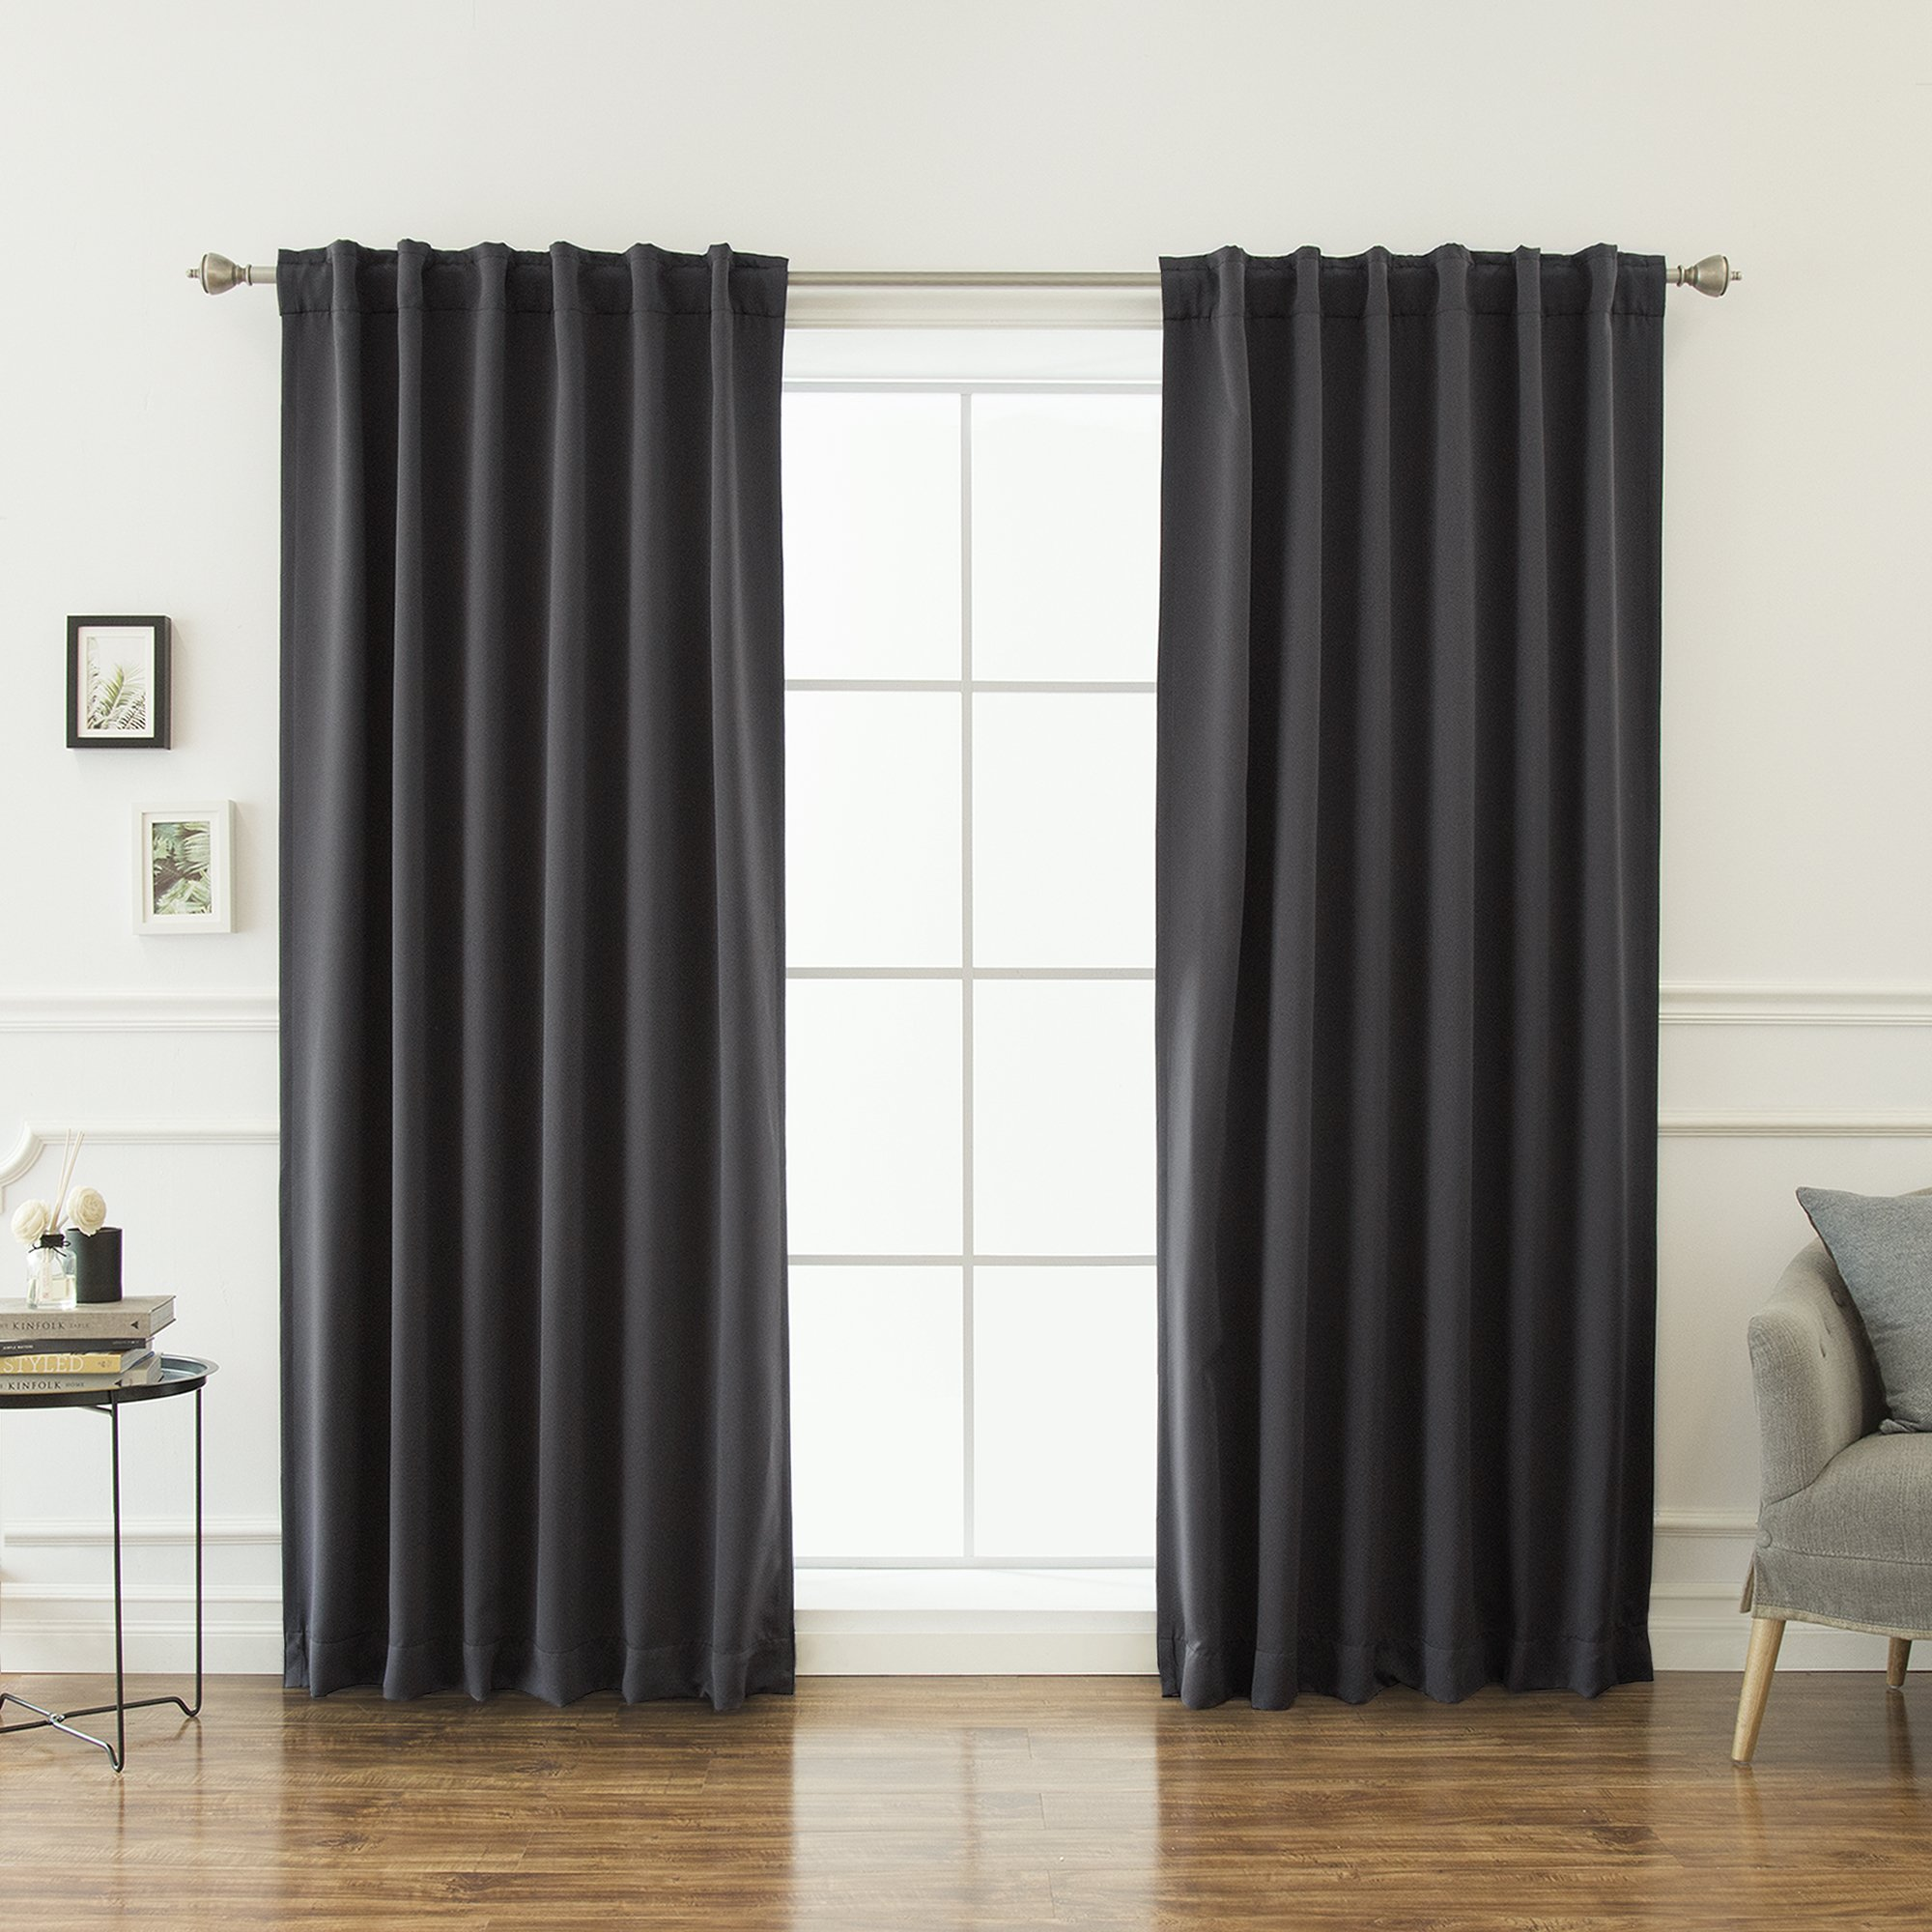 Best Home Fashion Thermal Insulated Blackout Curtains - Back Tab/Rod Pocket - 52'' W x 84'' L - Dark Grey (Set of 2 Panels)